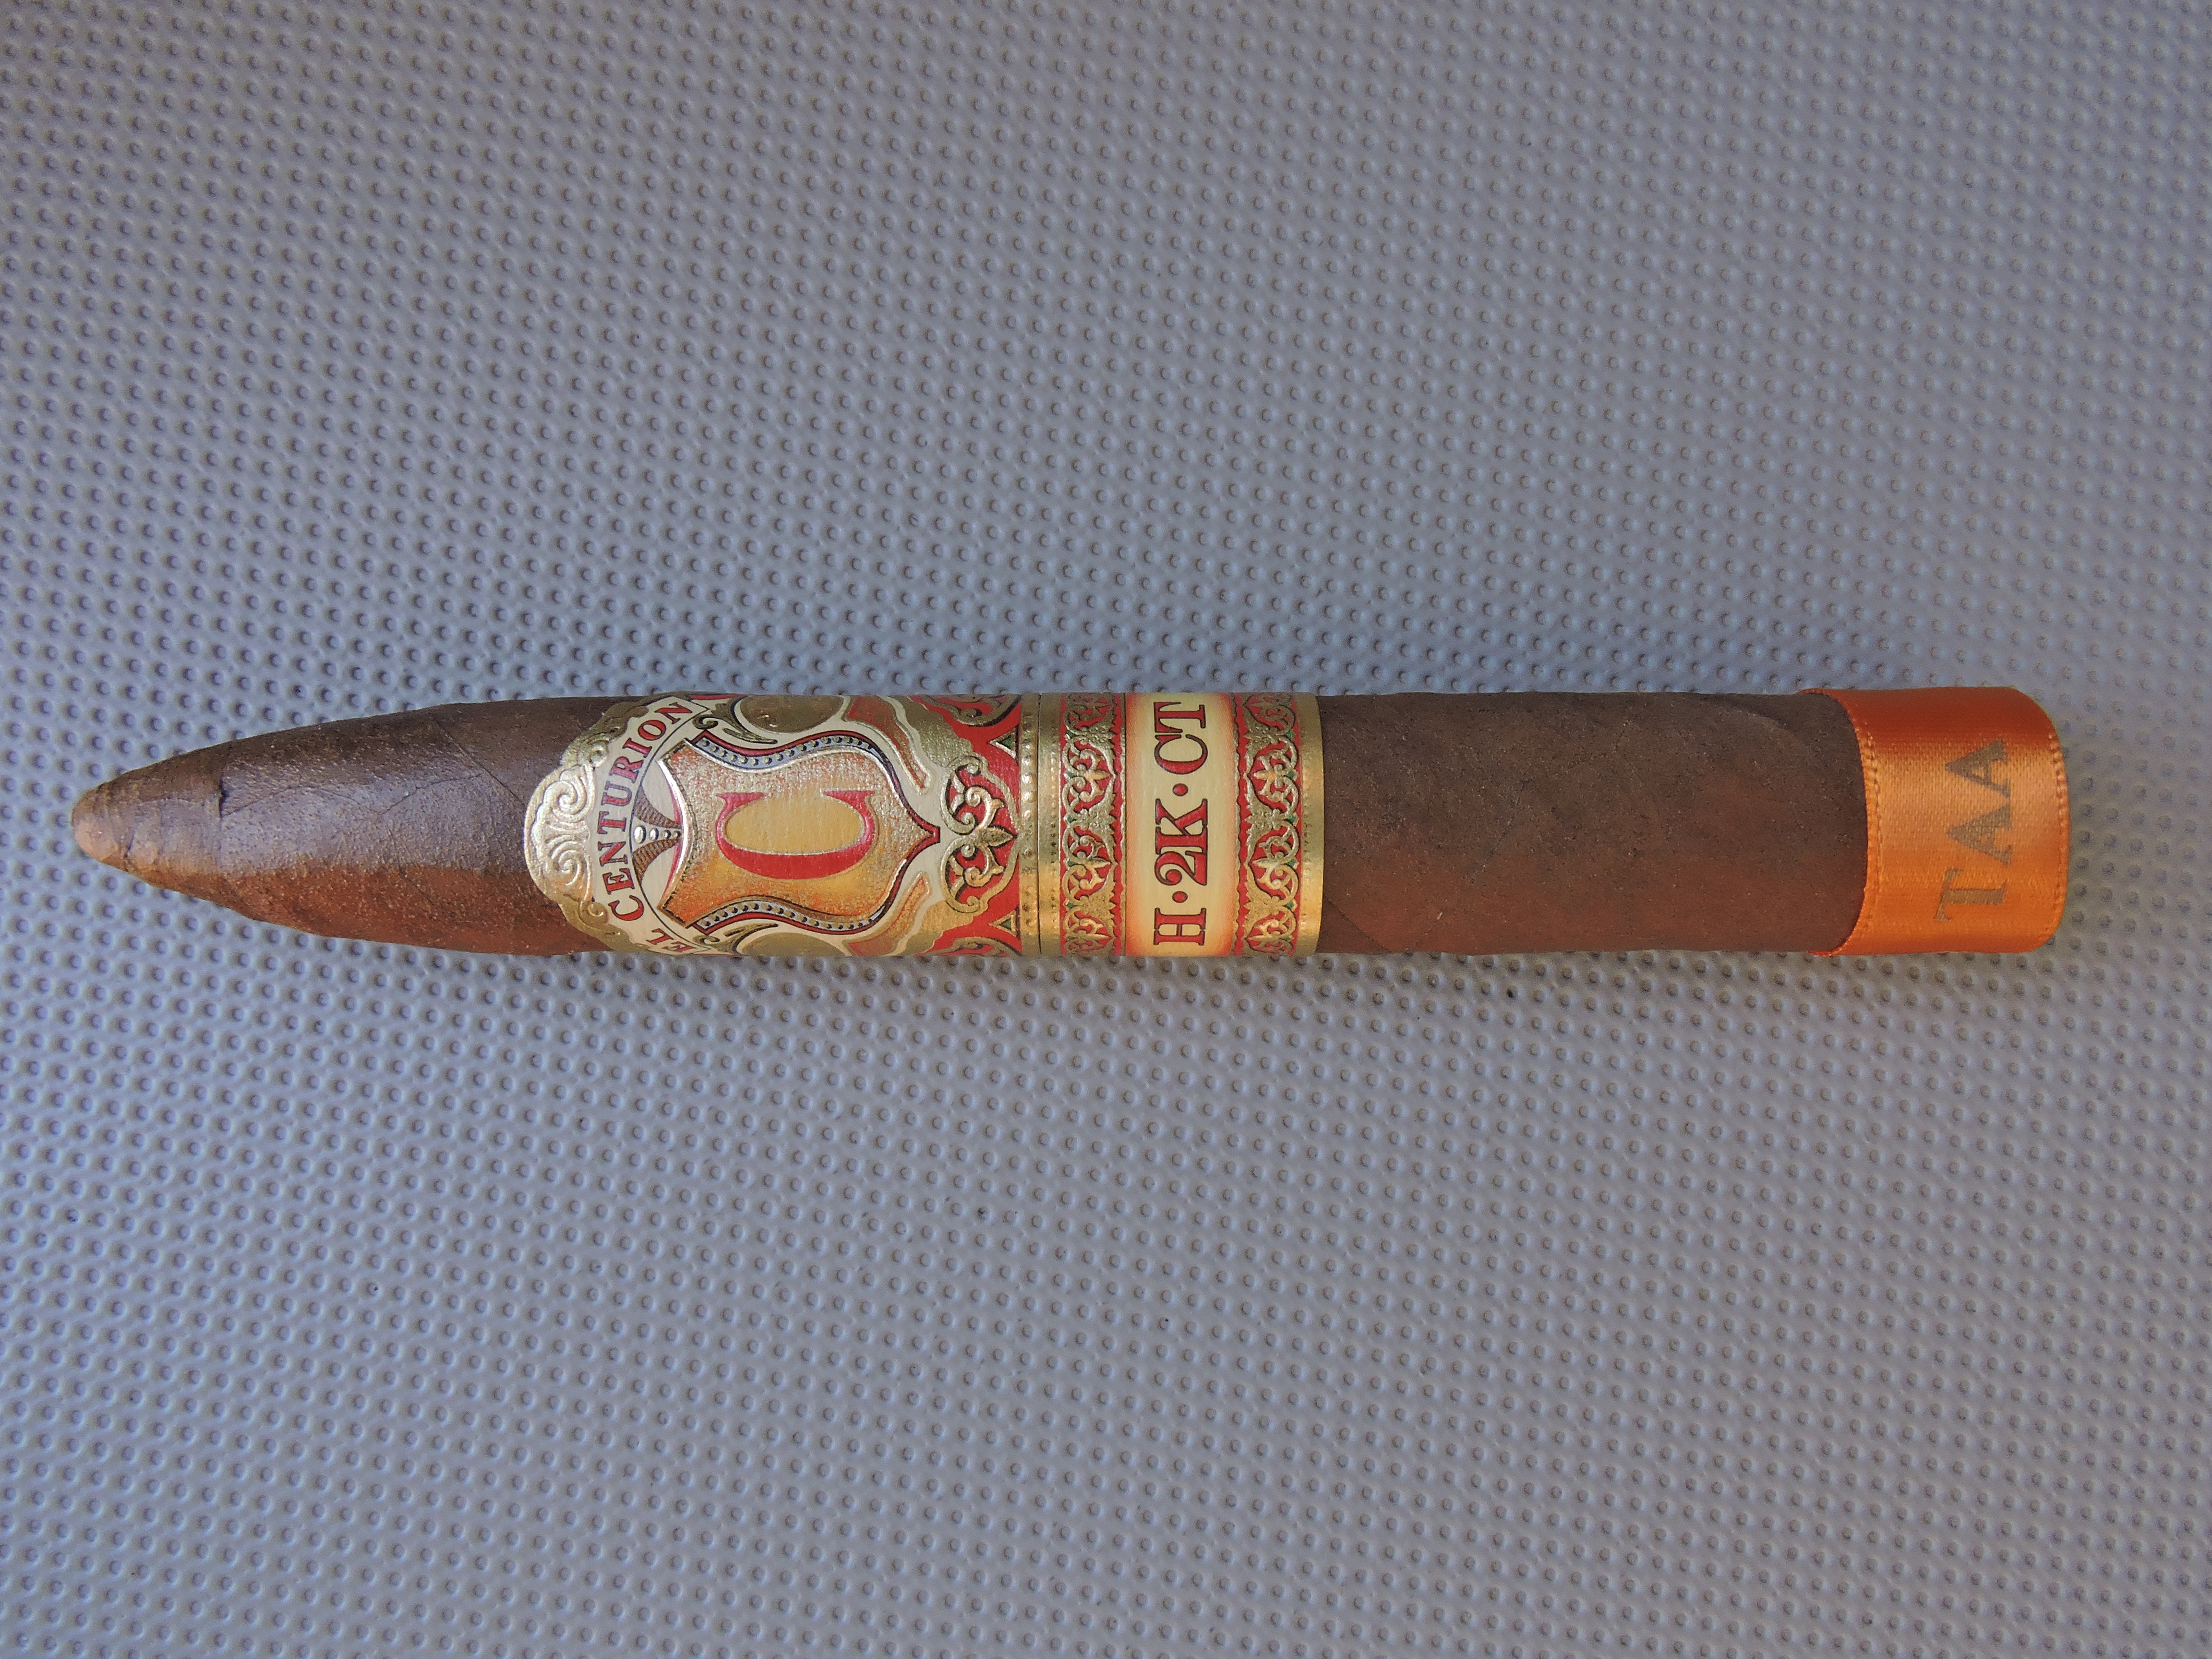 Cigar Review: El Centurion H.2K.CT Box Pressed Torpedo (TAA Exclusive) by My Father Cigars